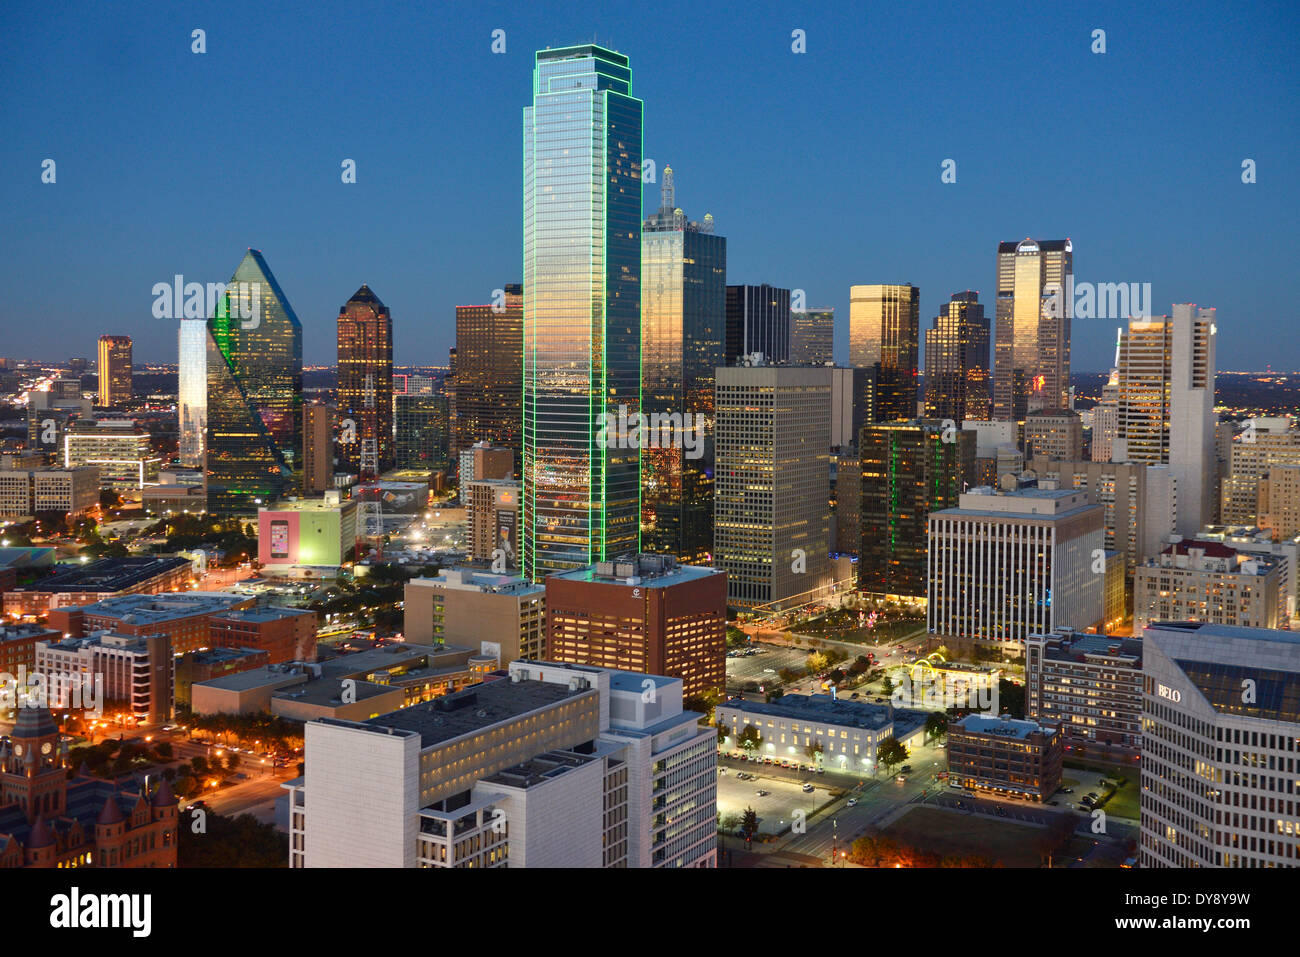 North America Texas USA United States America Dallas skyline skyscraper downtown dusk city glow urban nightscape buildings, - Stock Image